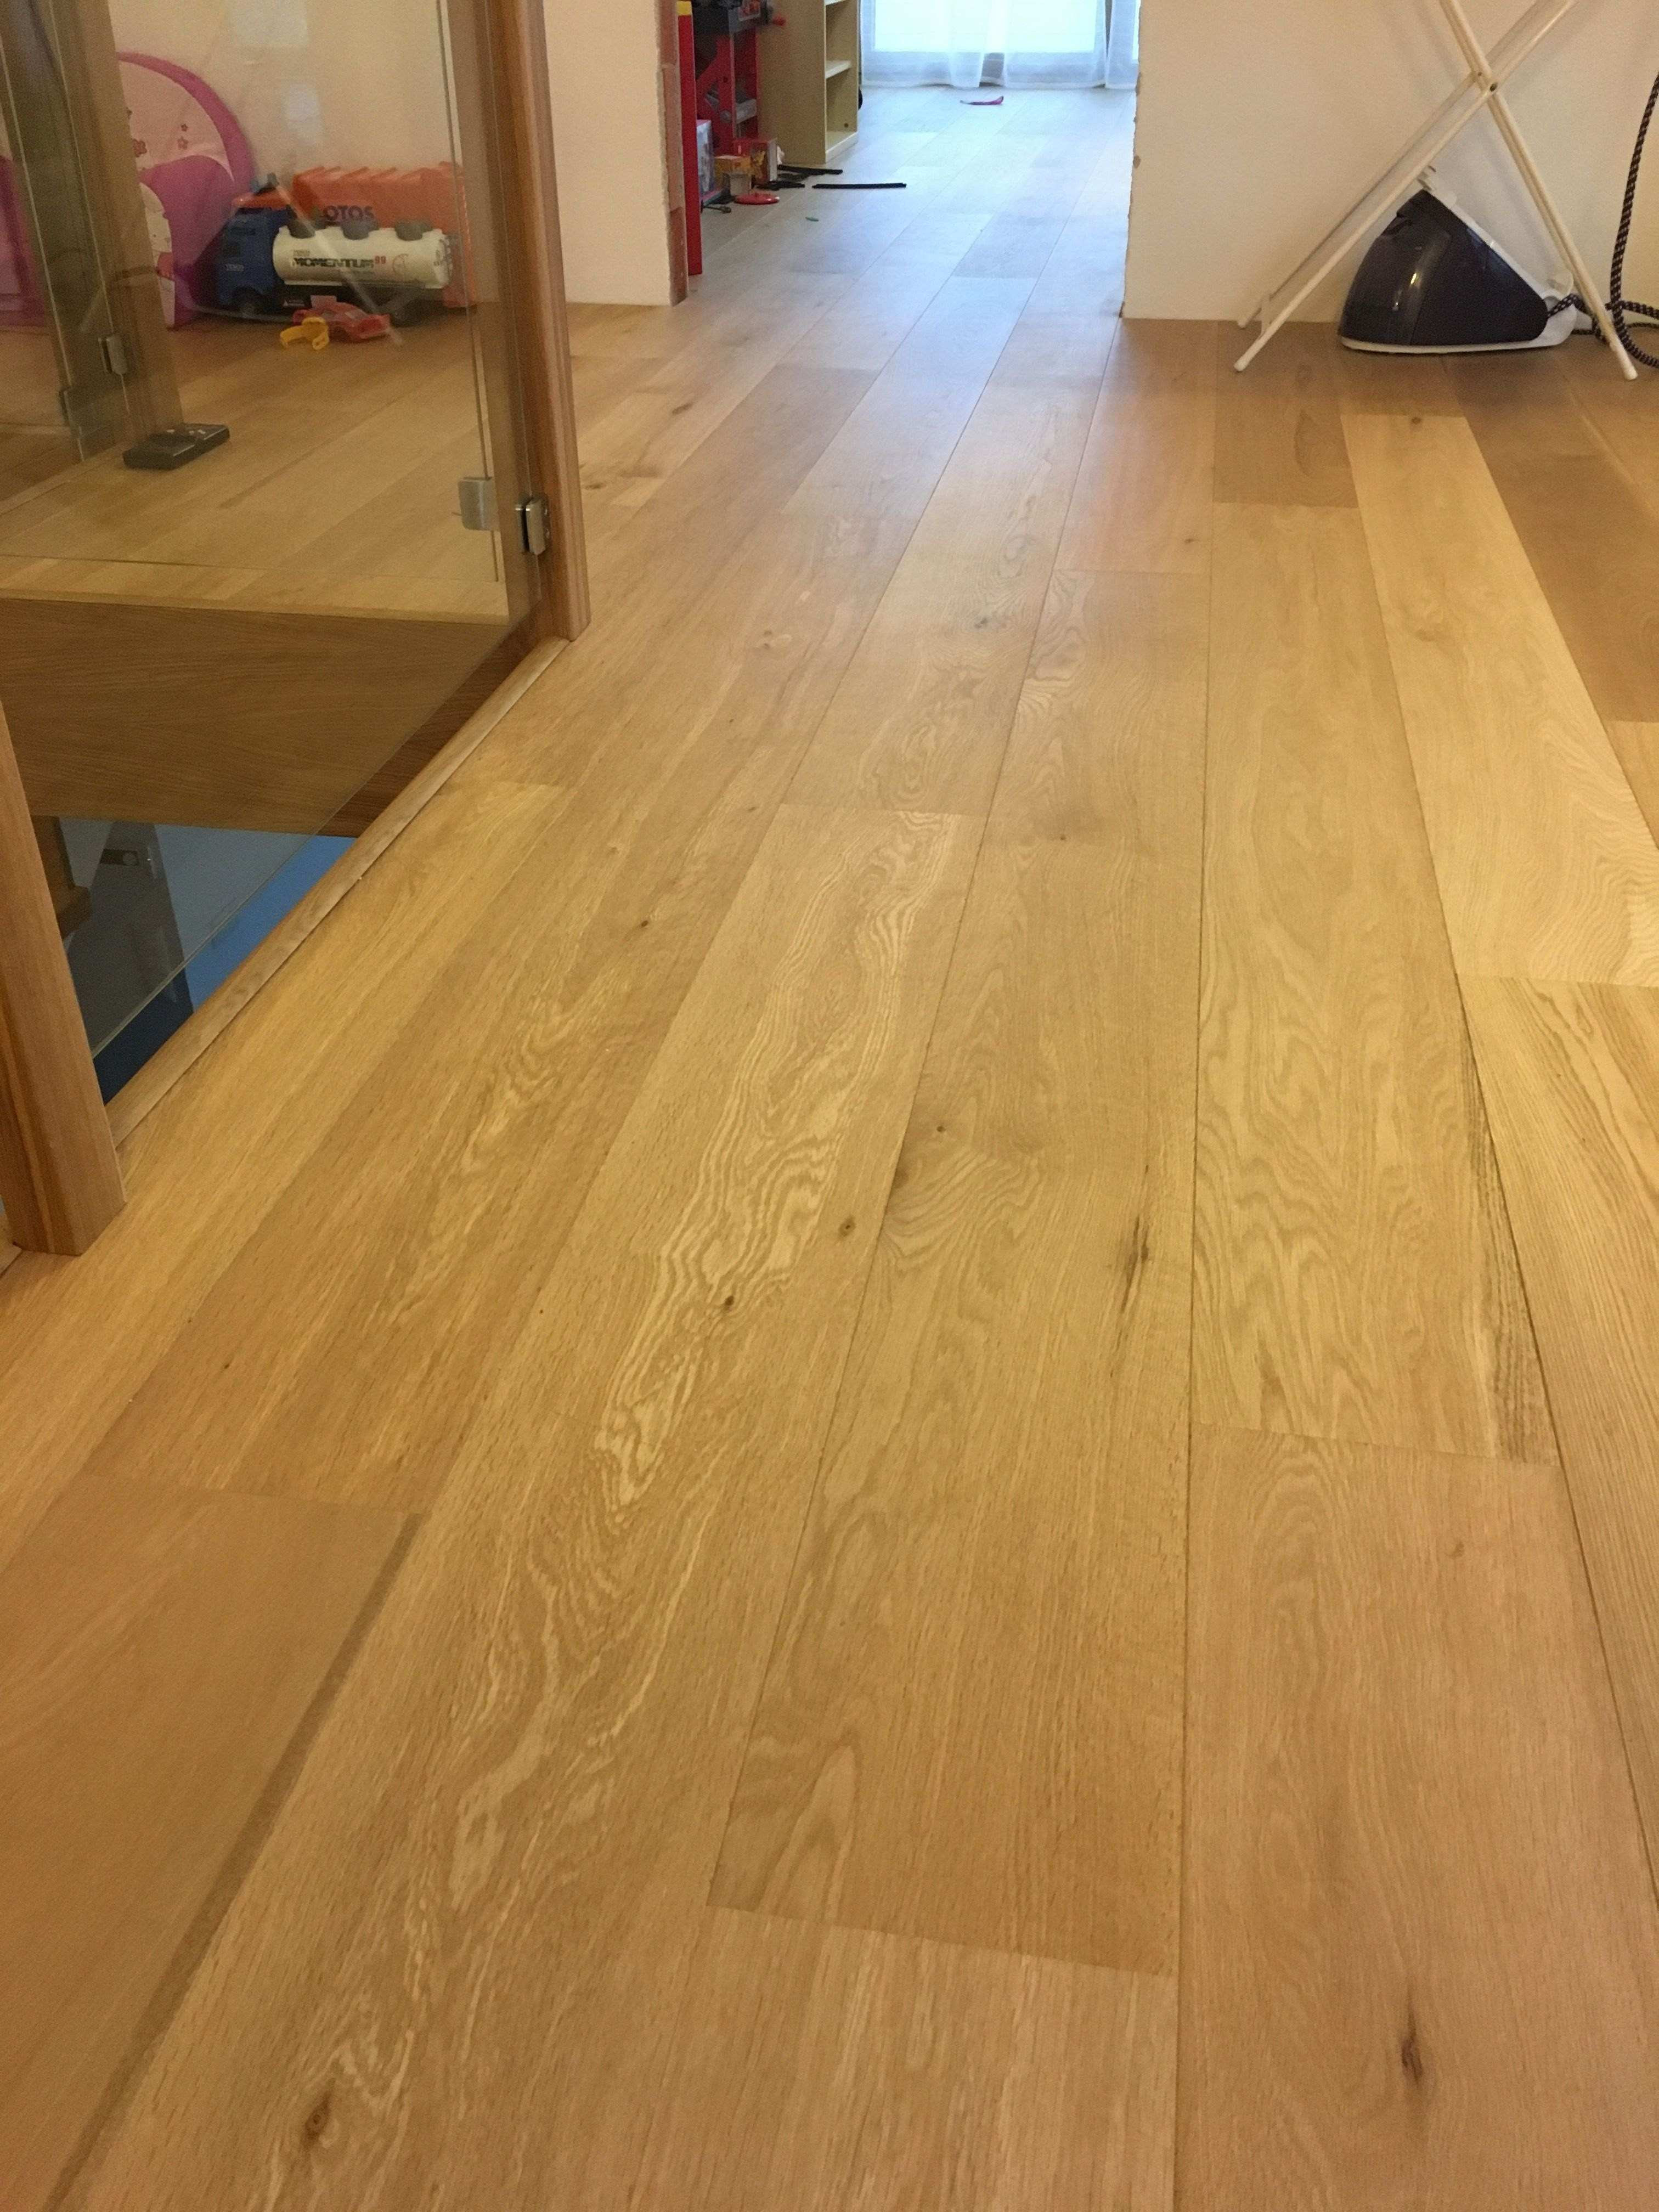 hardwood floors and water of 30 new laminate flooring water damage swansonsfuneralhomes com regarding laminate flooring water damage best of hardwood laminate flooring prices podemosleganes